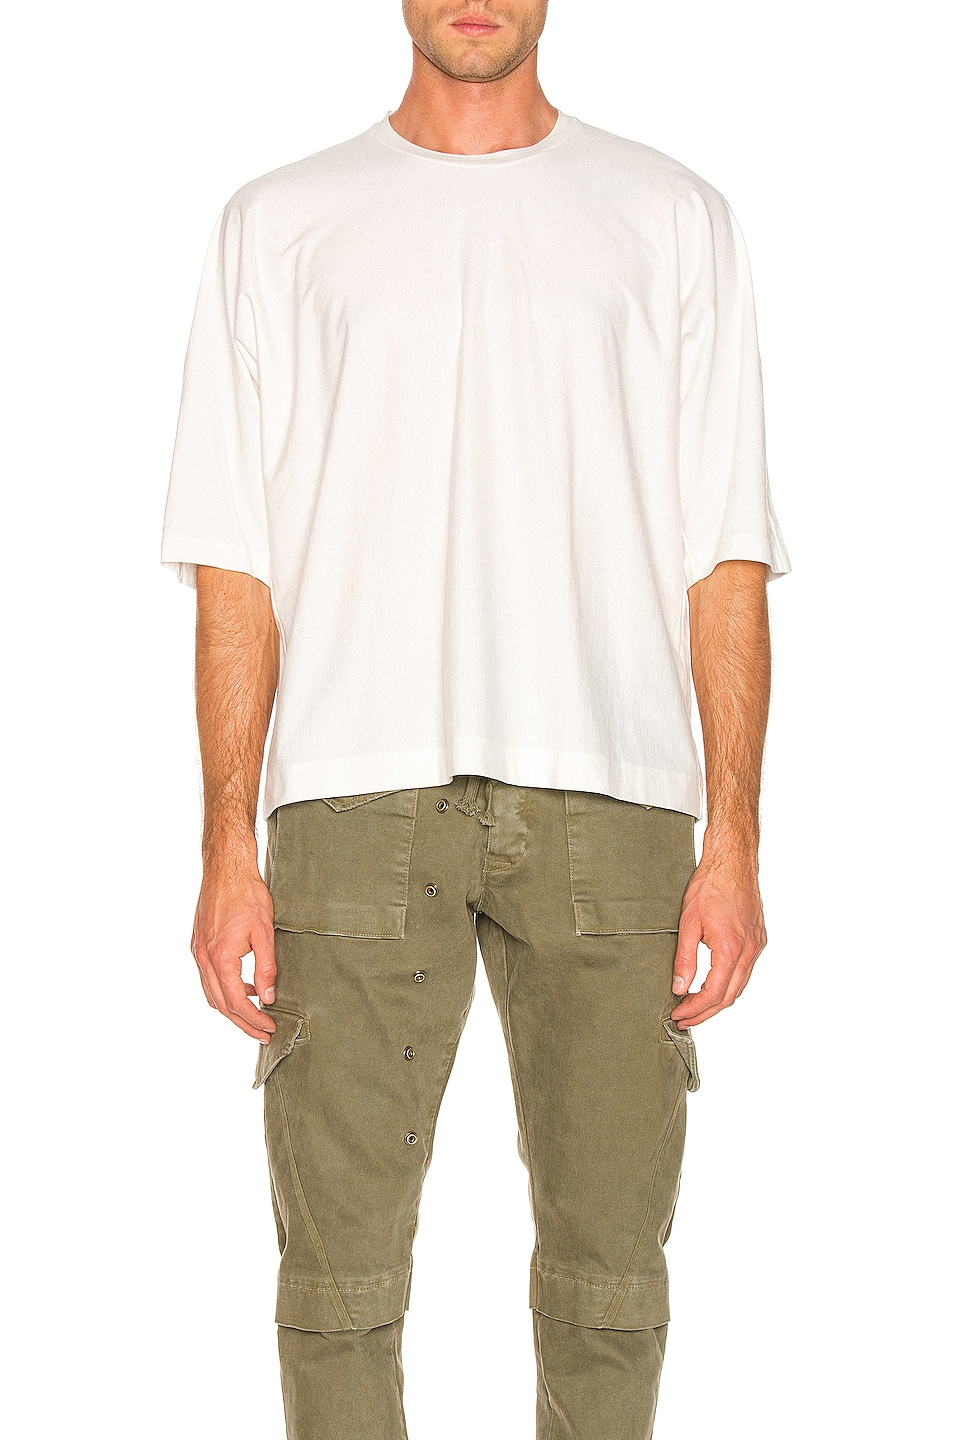 Image 1 of Issey Miyake Homme Plisse Release T in White